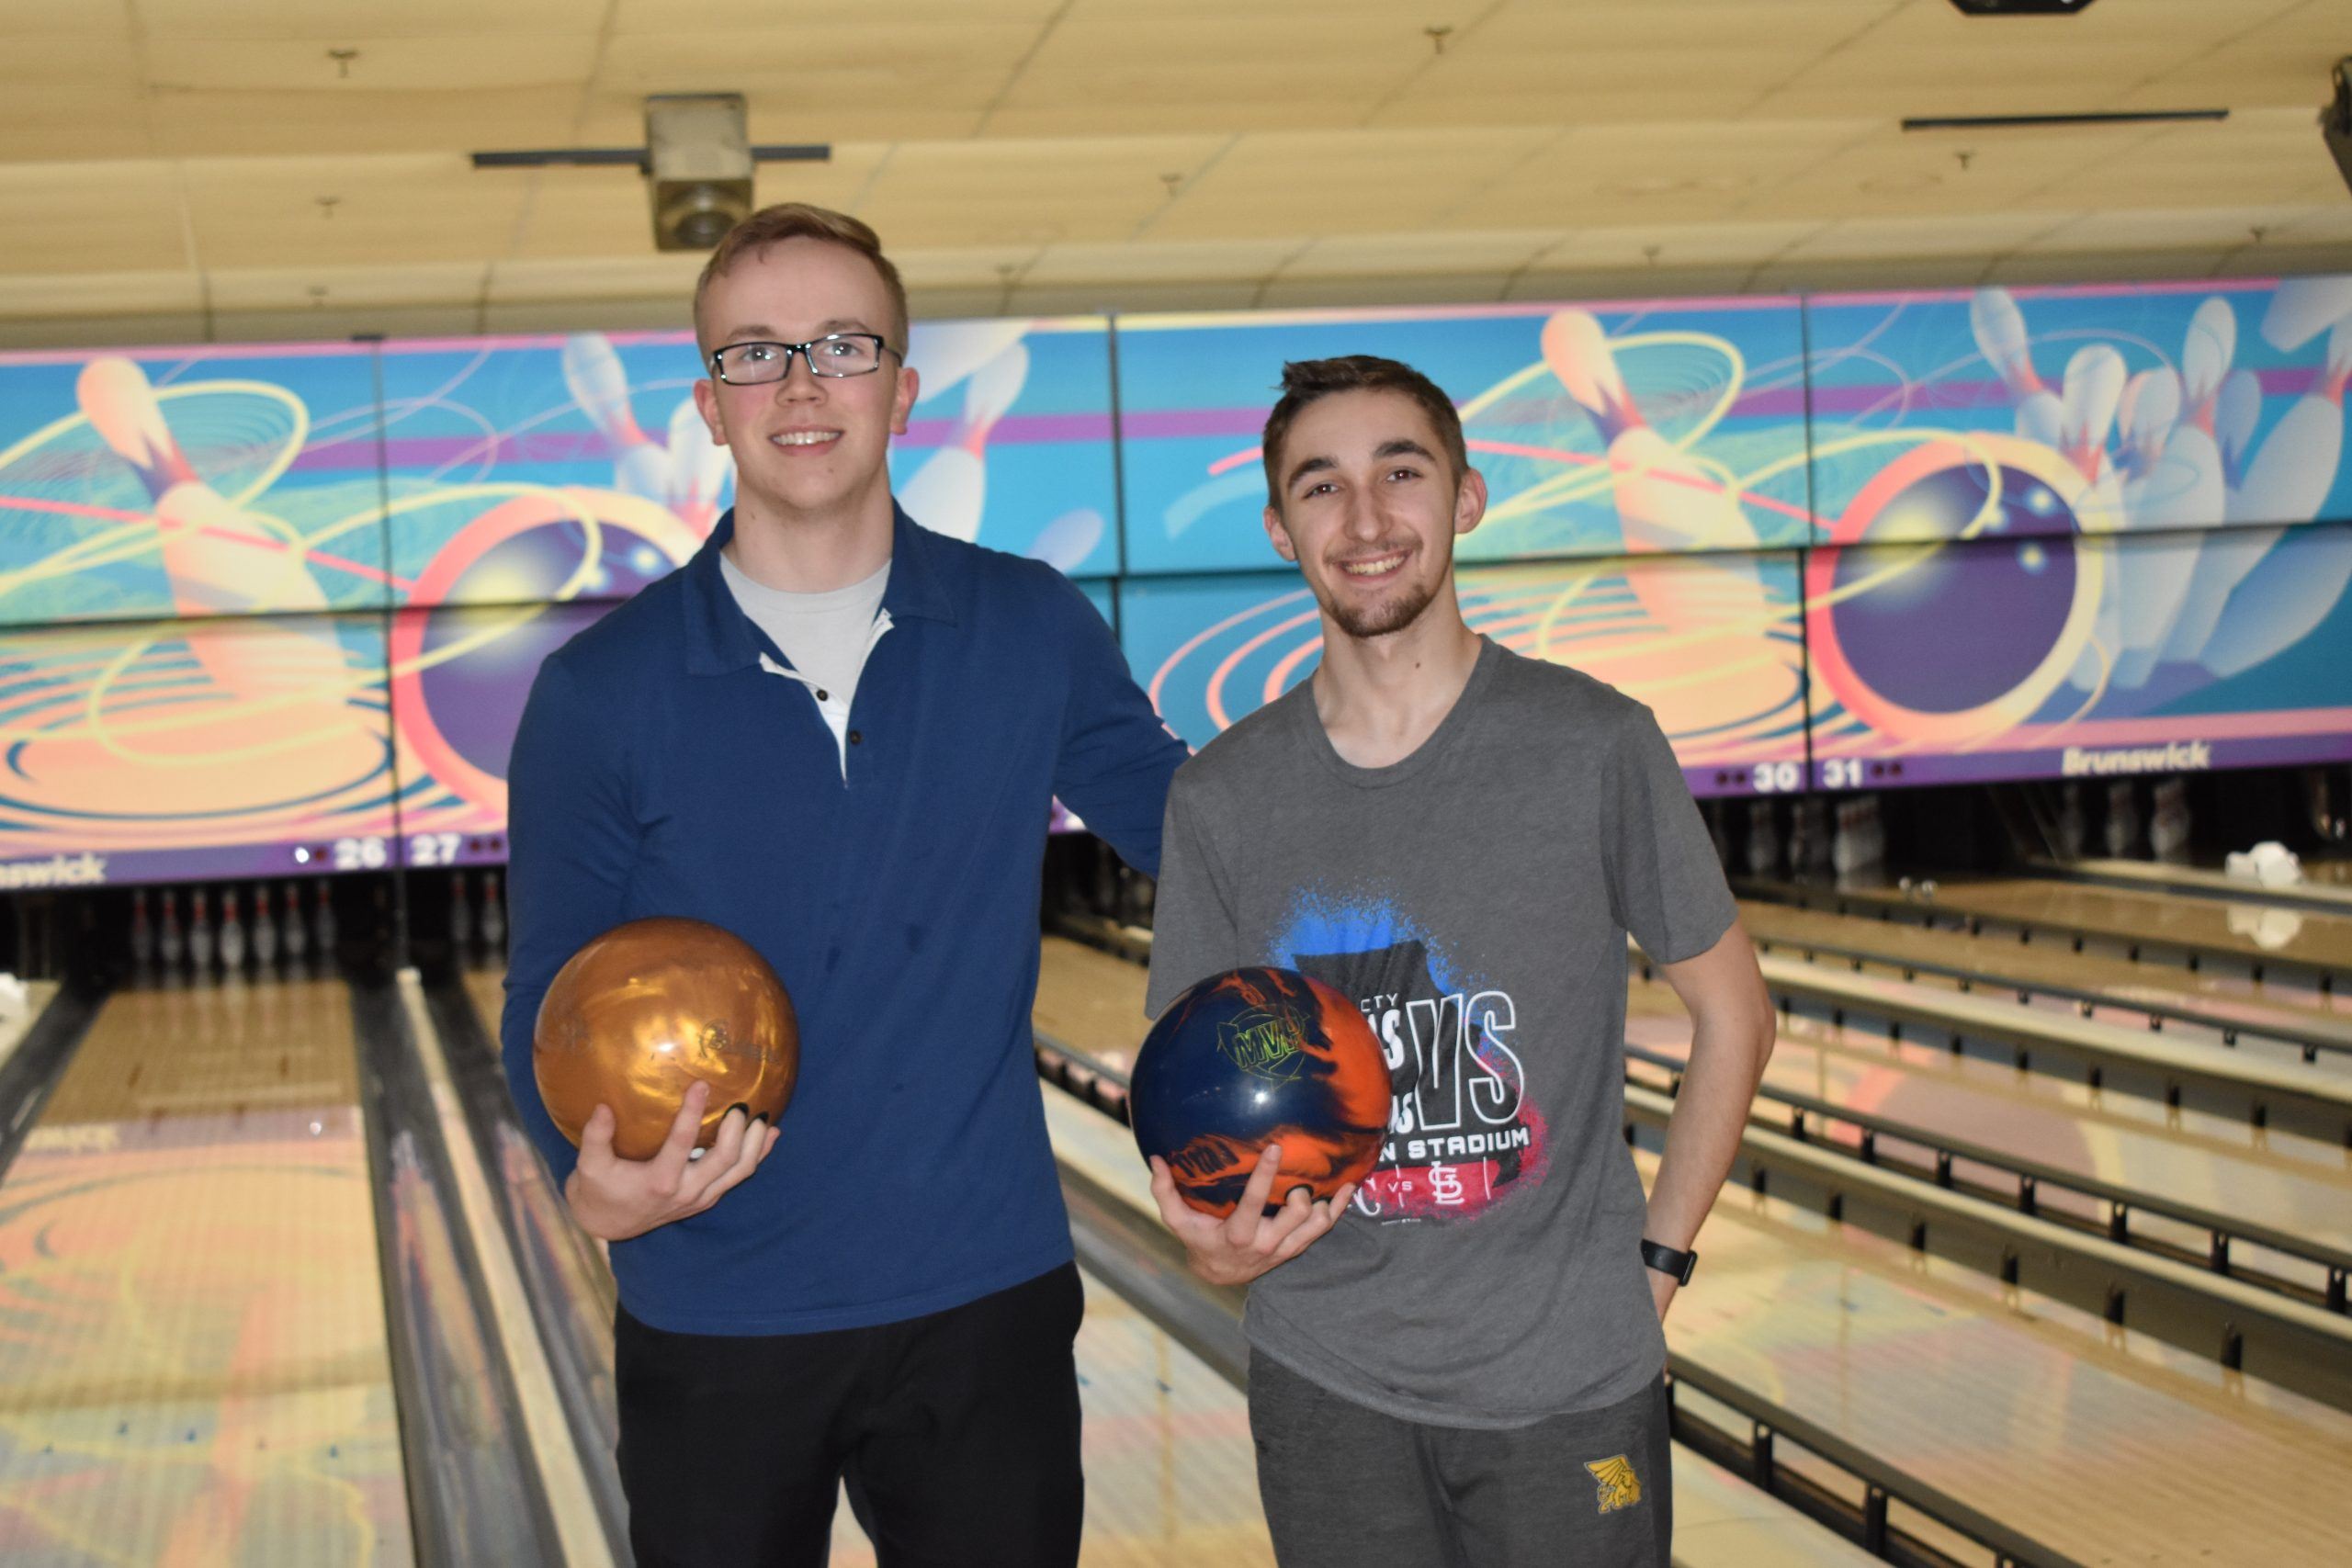 Bowling Team members Carson Field and Jacob Dec